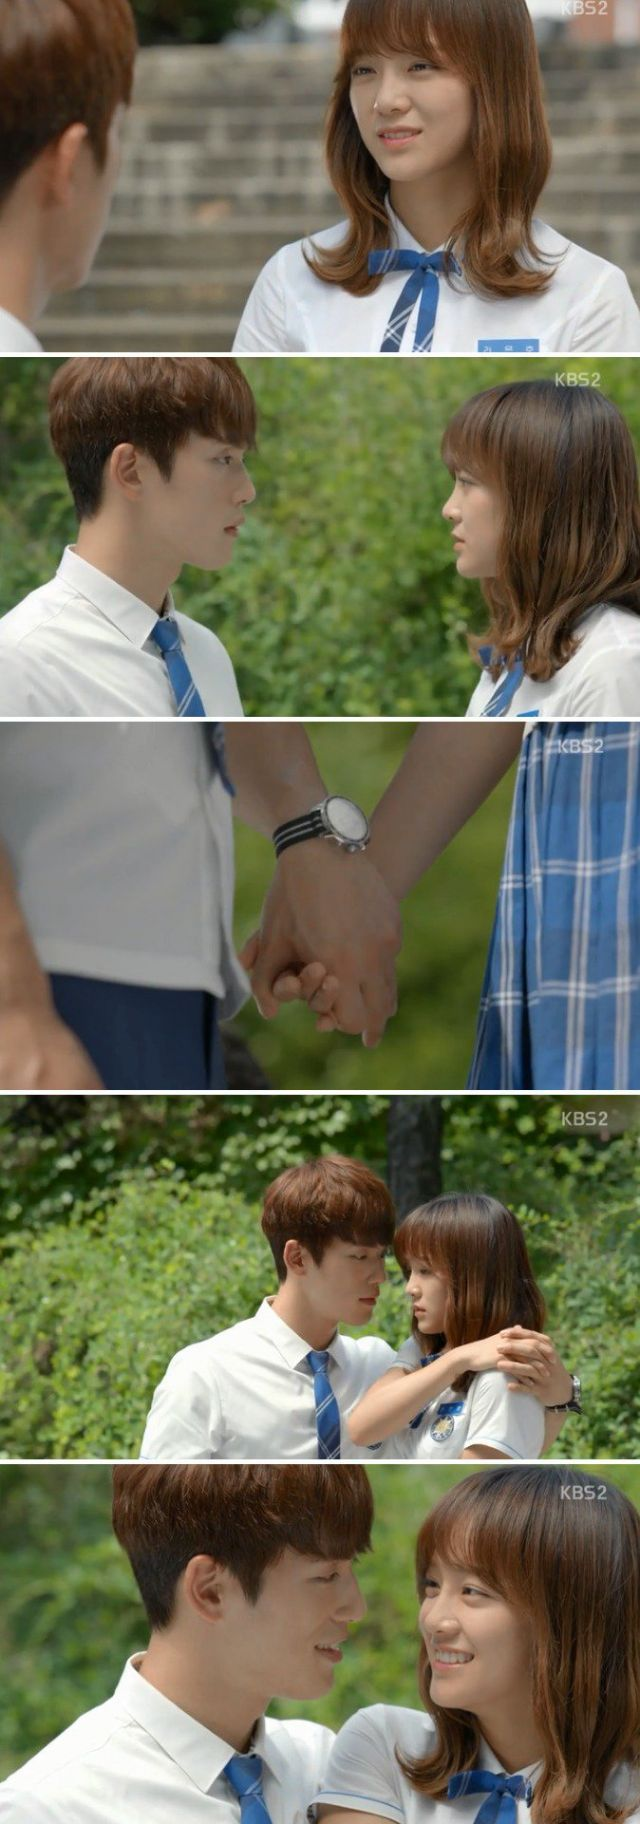 [Spoiler] Added episode 12 captures for the #kdrama 'School 2017'